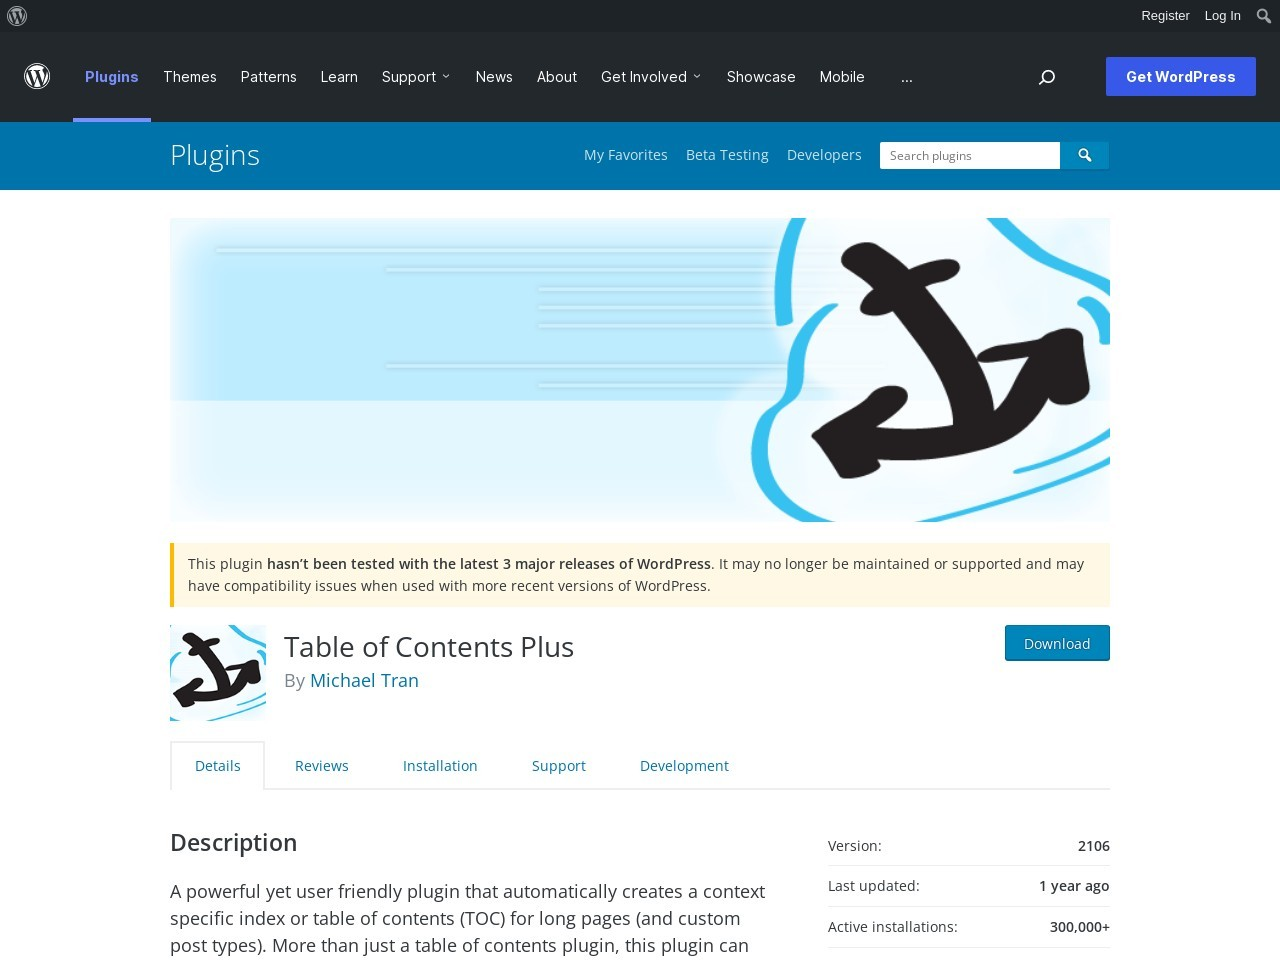 https://wordpress.org/plugins/table-of-contents-plus/